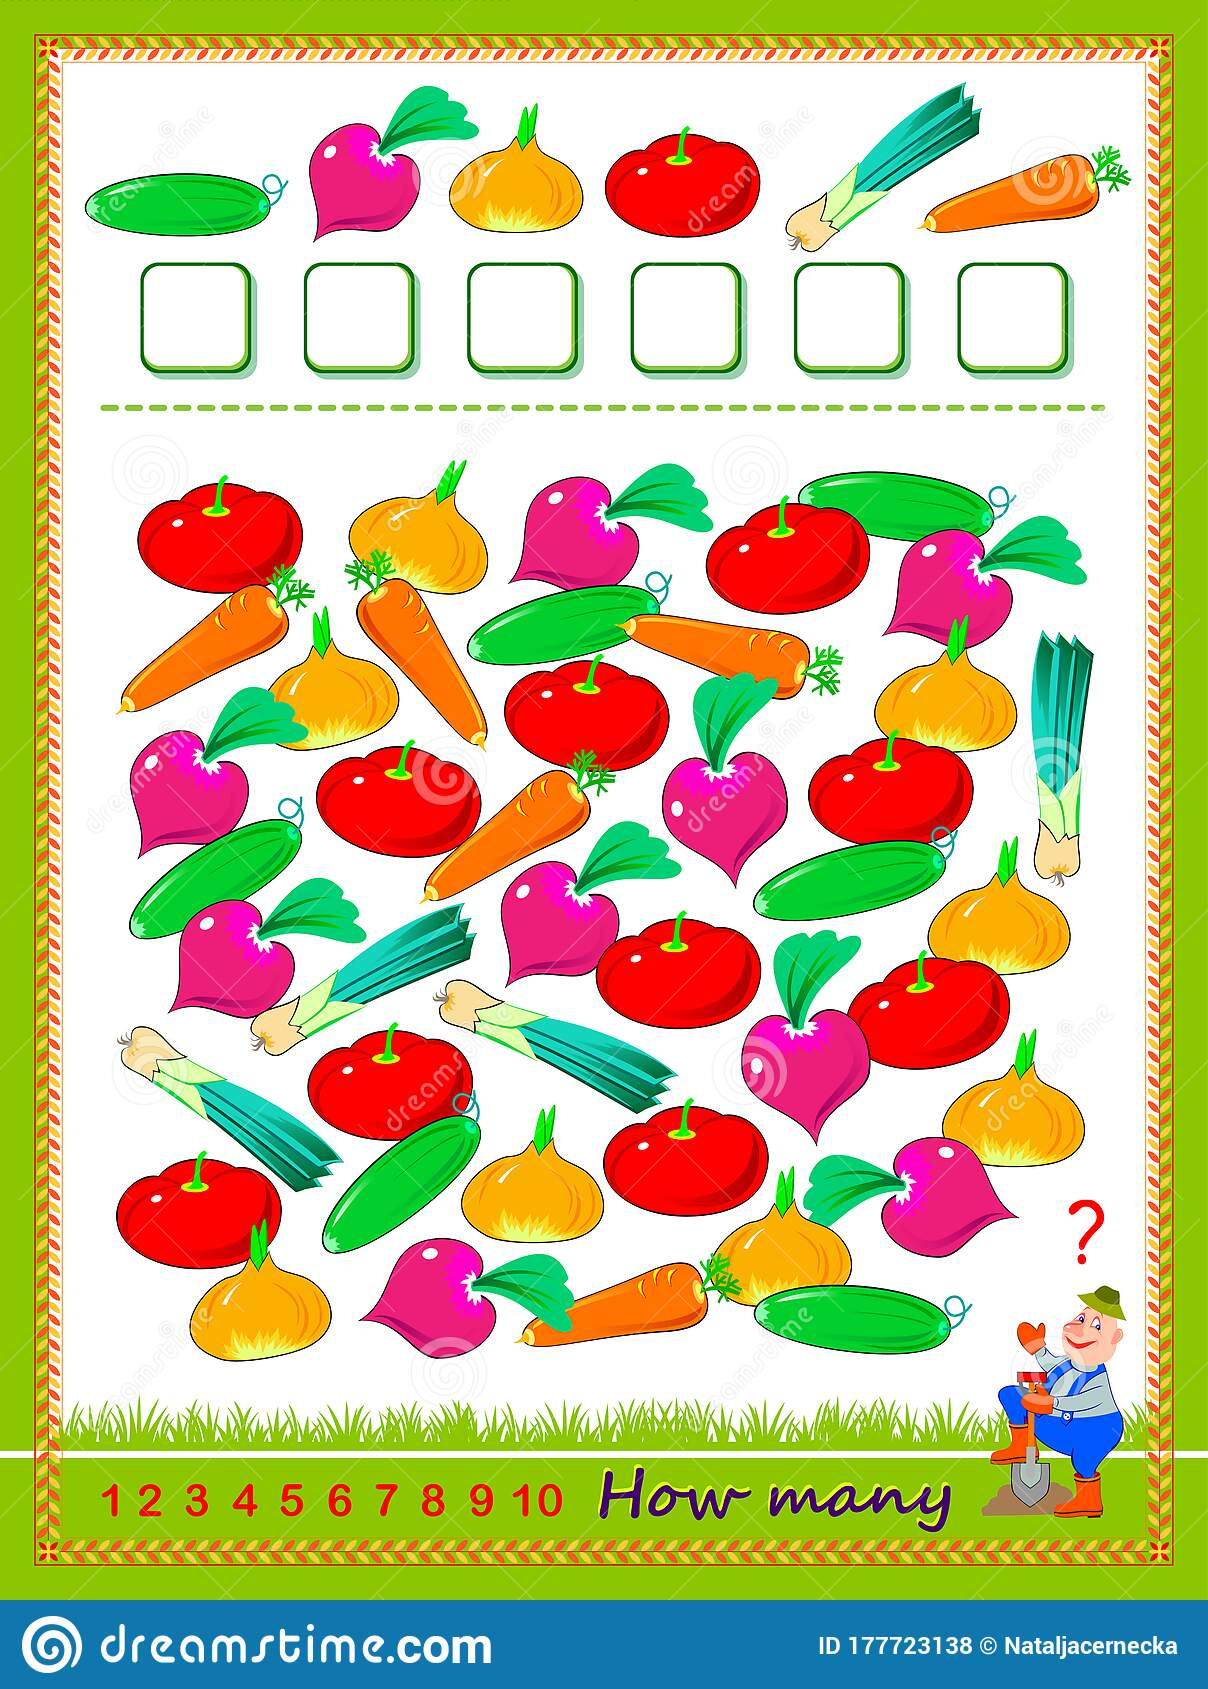 Math Education For Children Count Quantity Of Vegetables